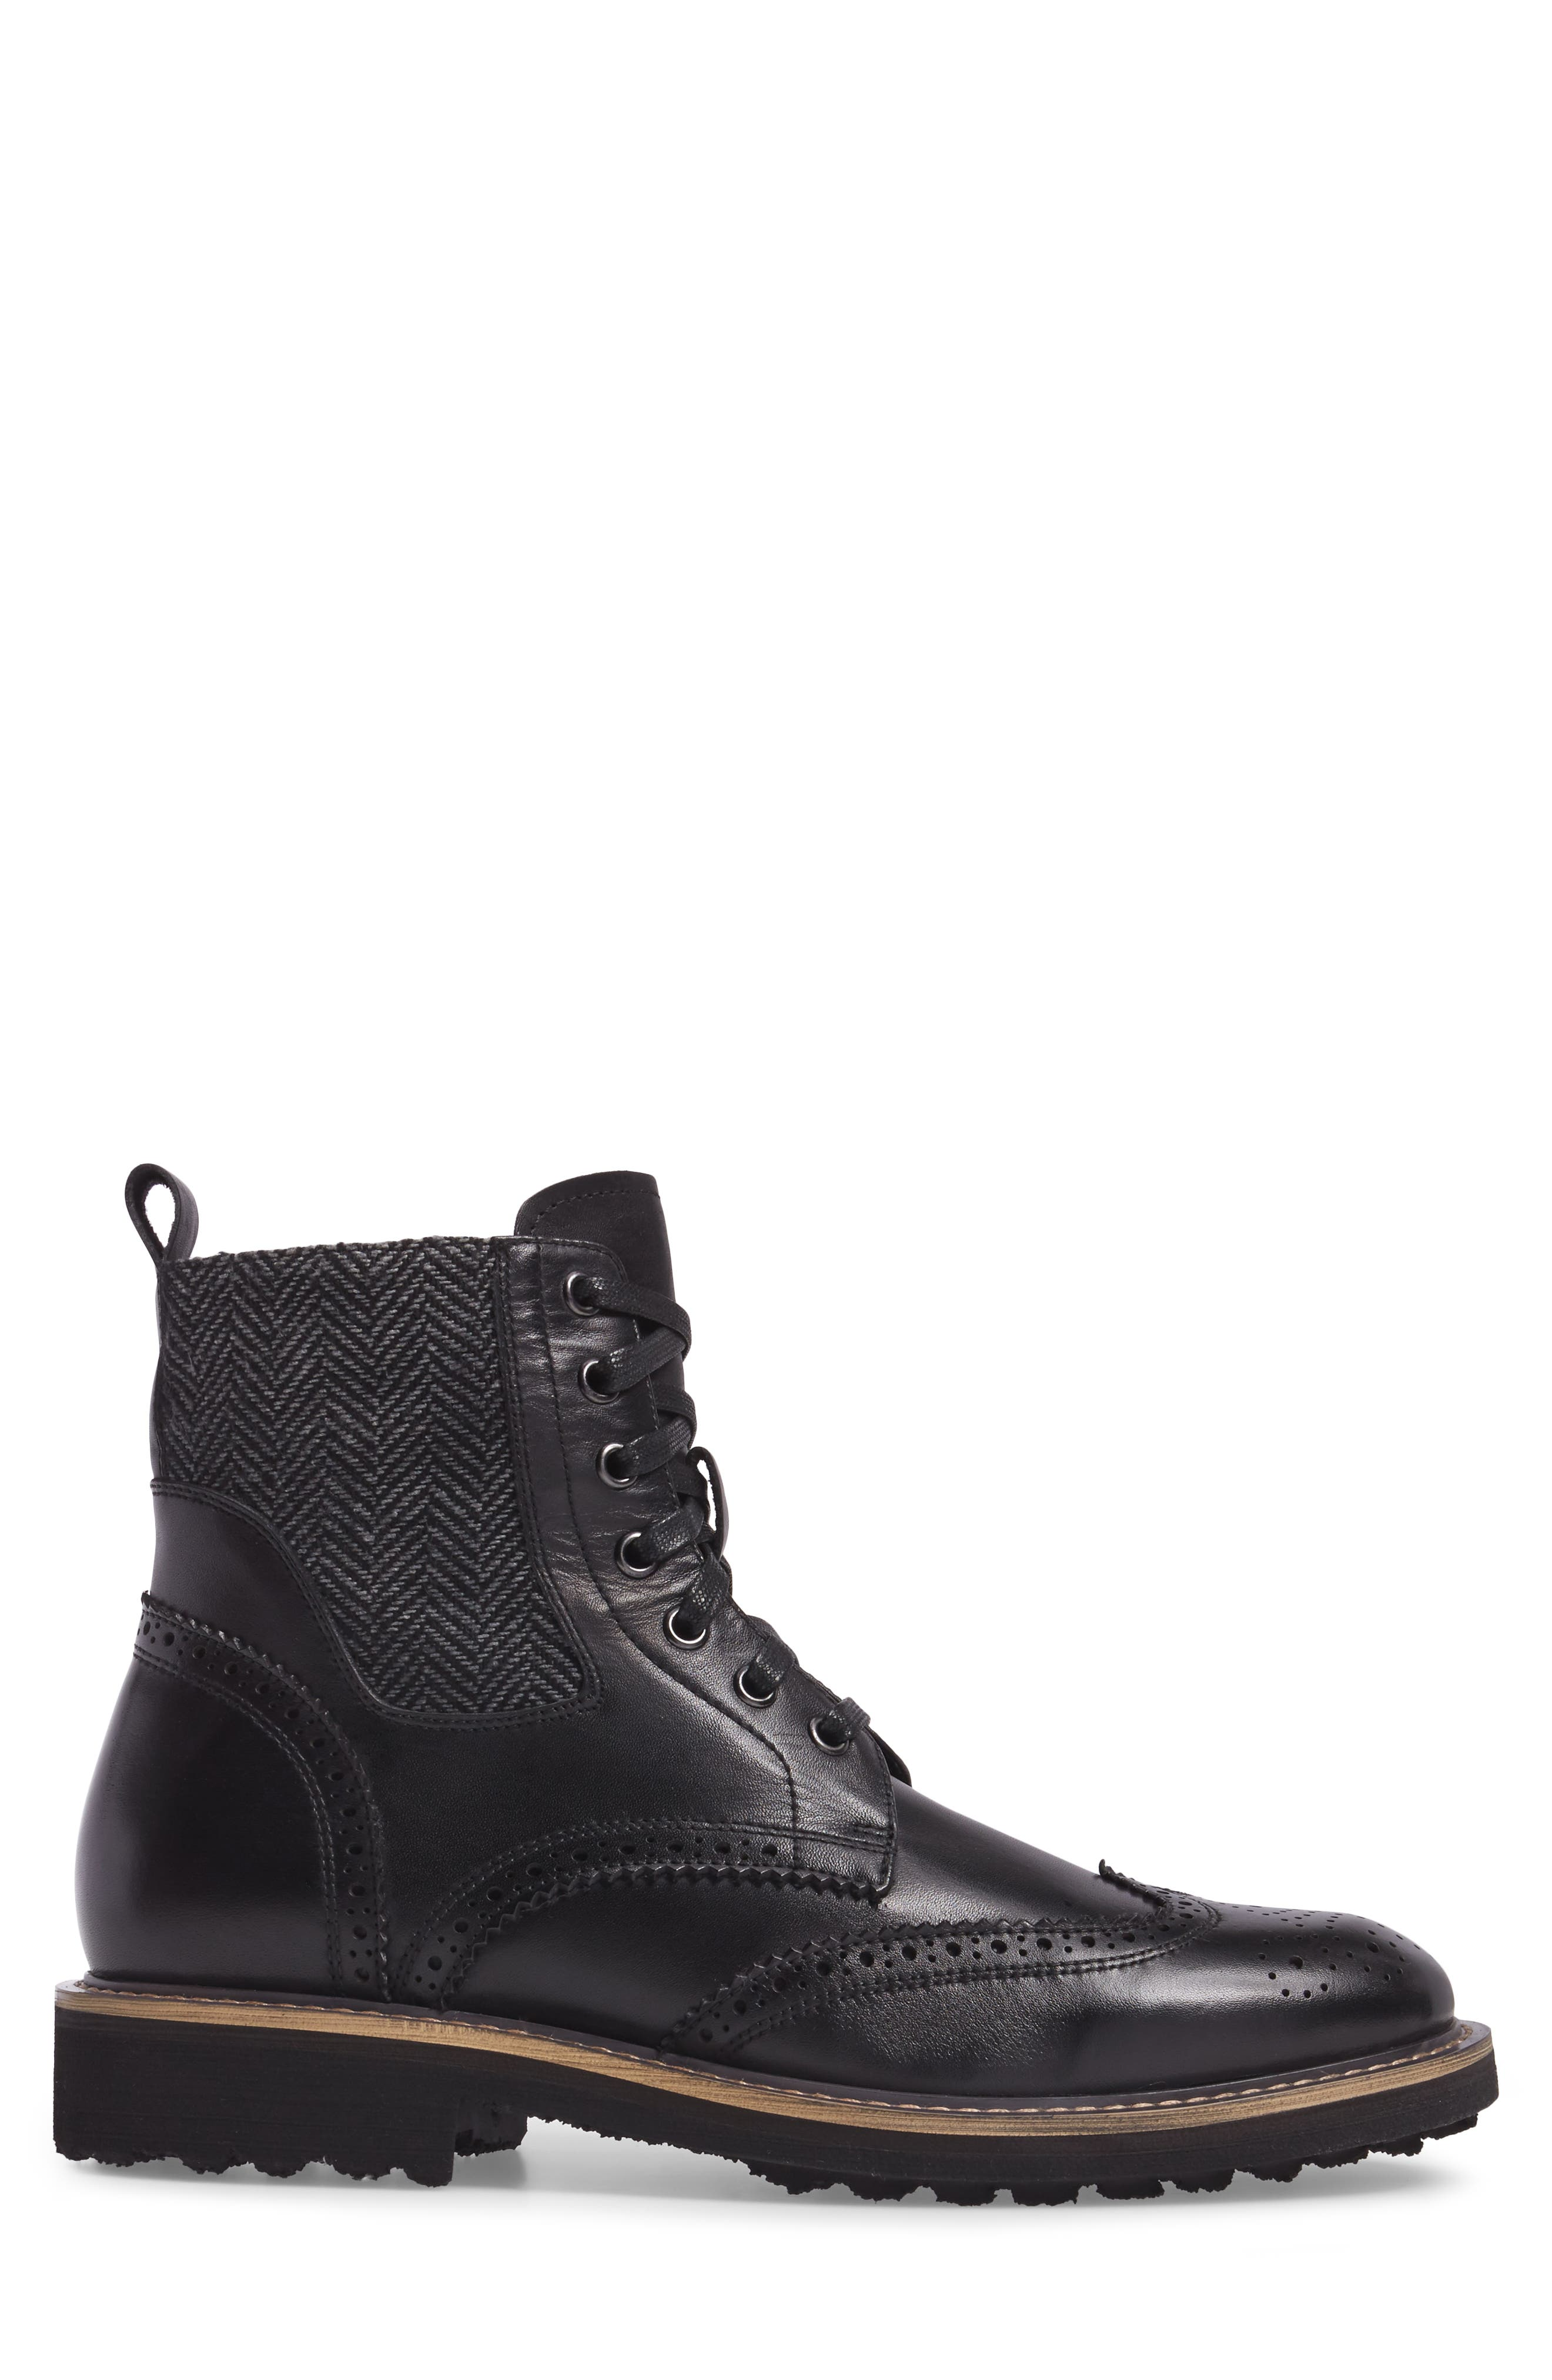 Farber Wingtip Boot,                             Alternate thumbnail 3, color,                             BLACK LEATHER